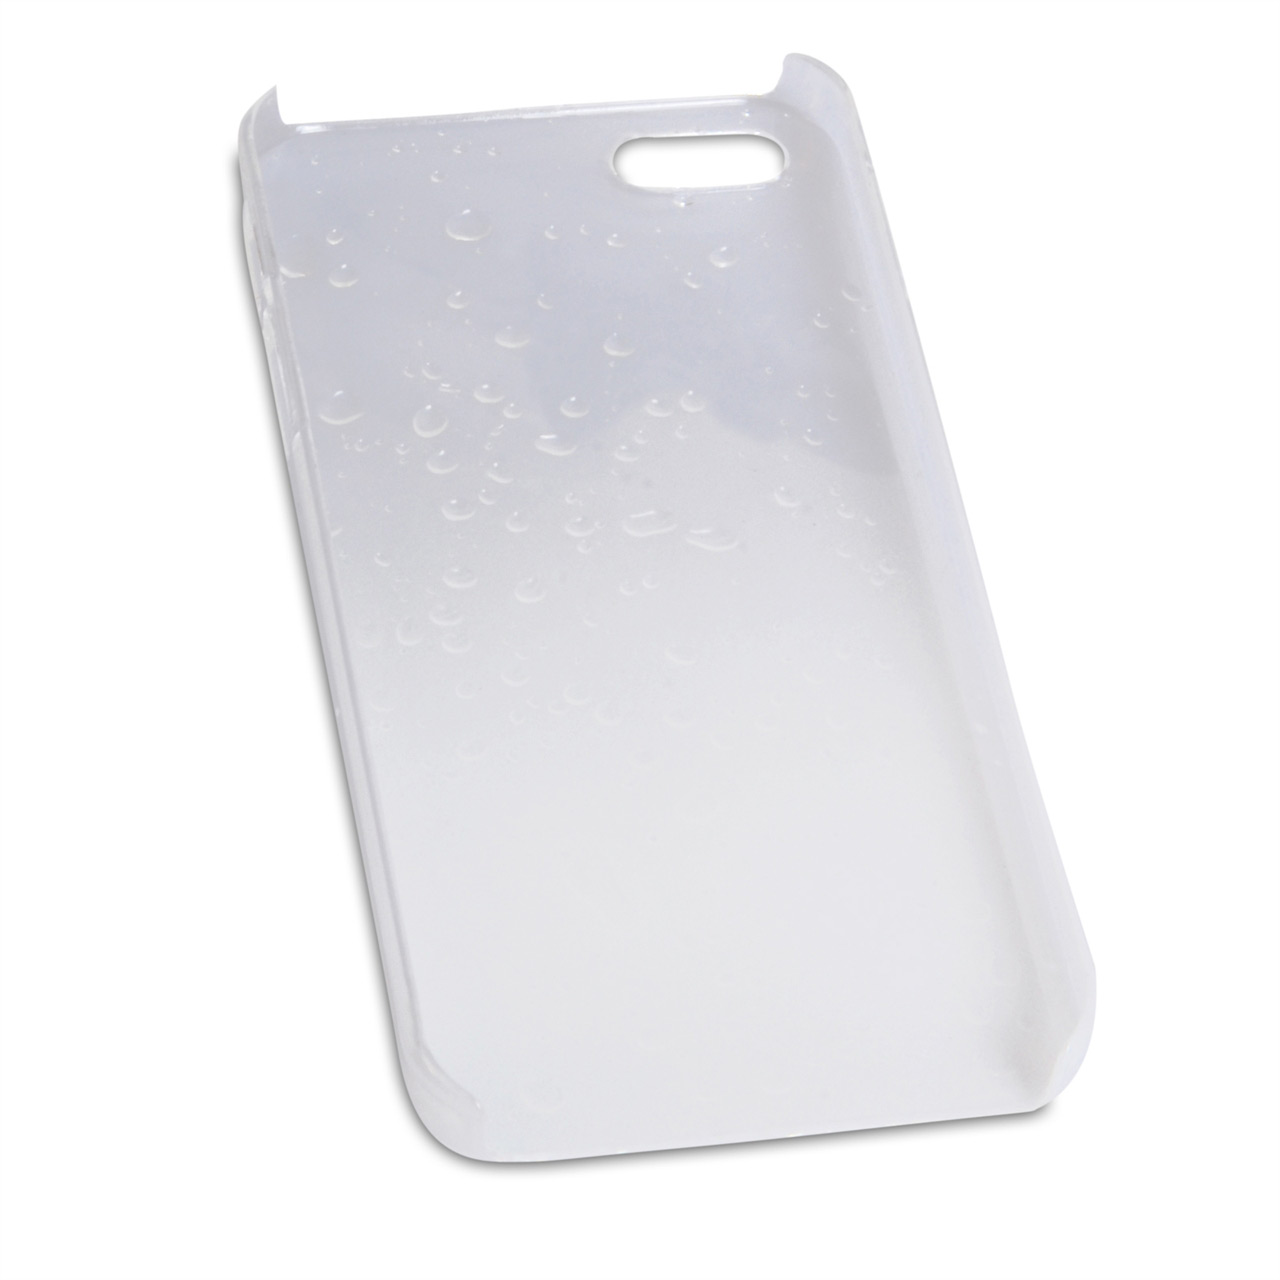 YouSave Accessories iPhone 5 / 5S White Raindrop Hard Case